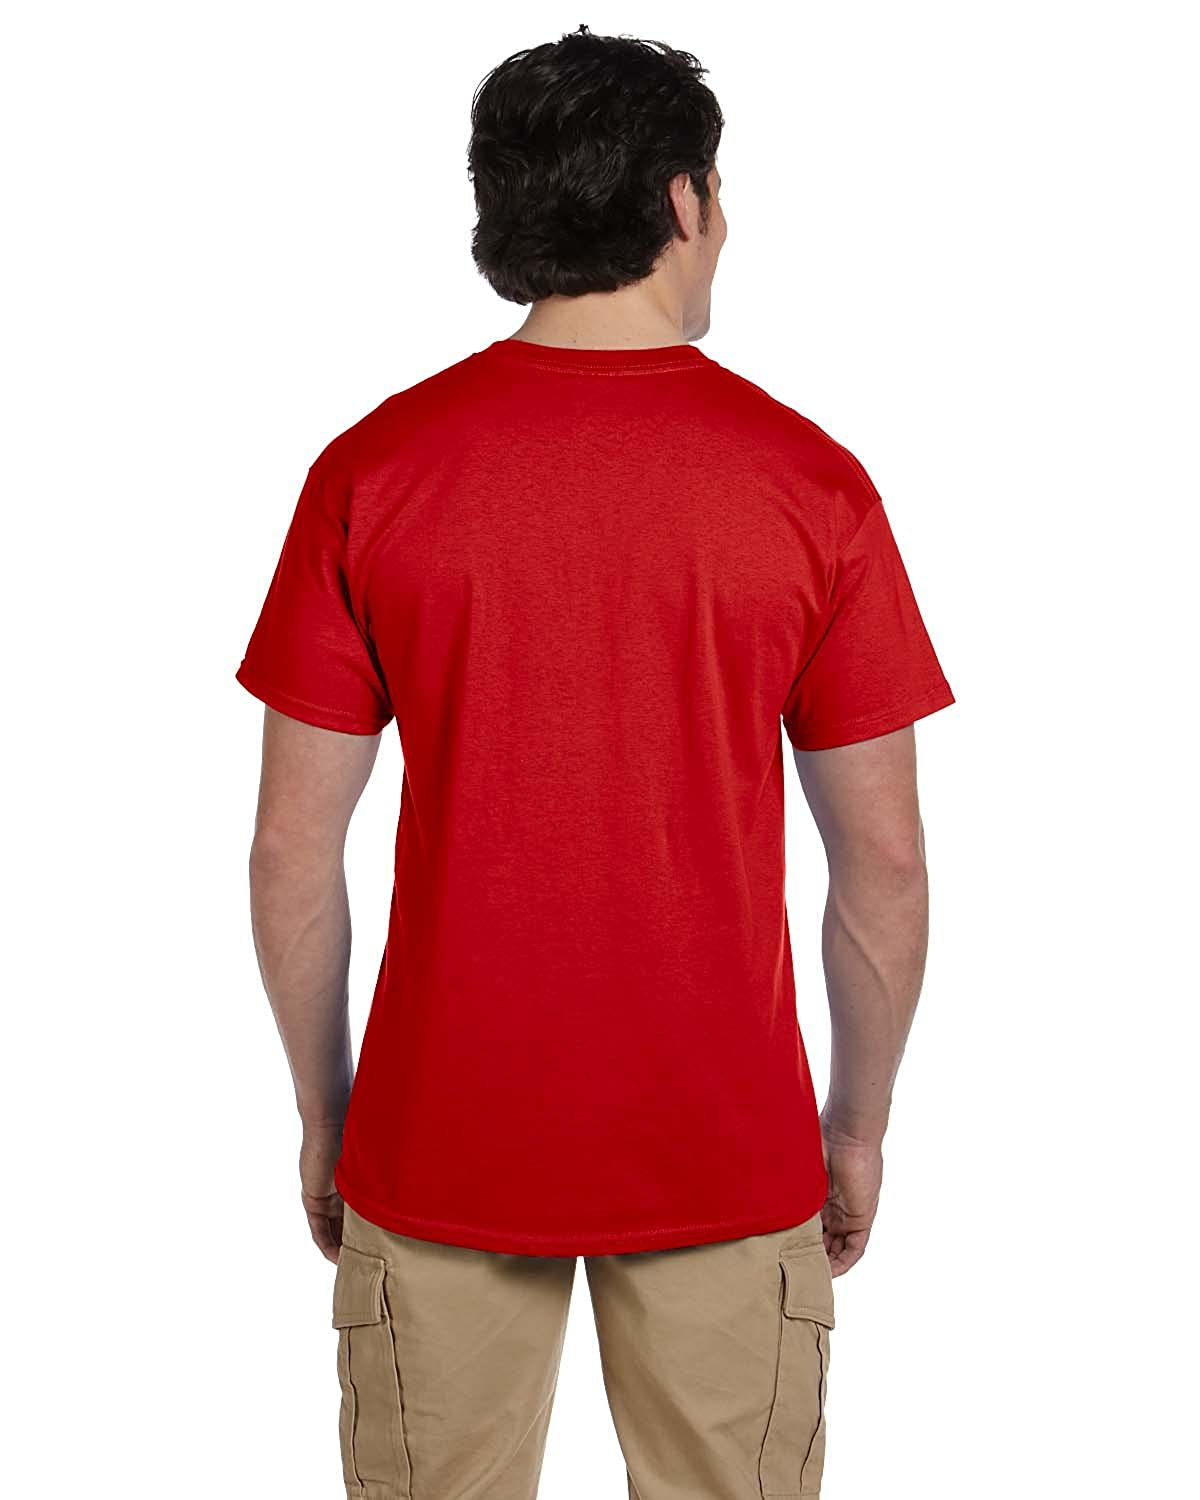 Fruit of the Loom 3931 Mens Double-Needle Athletic T-Shirt